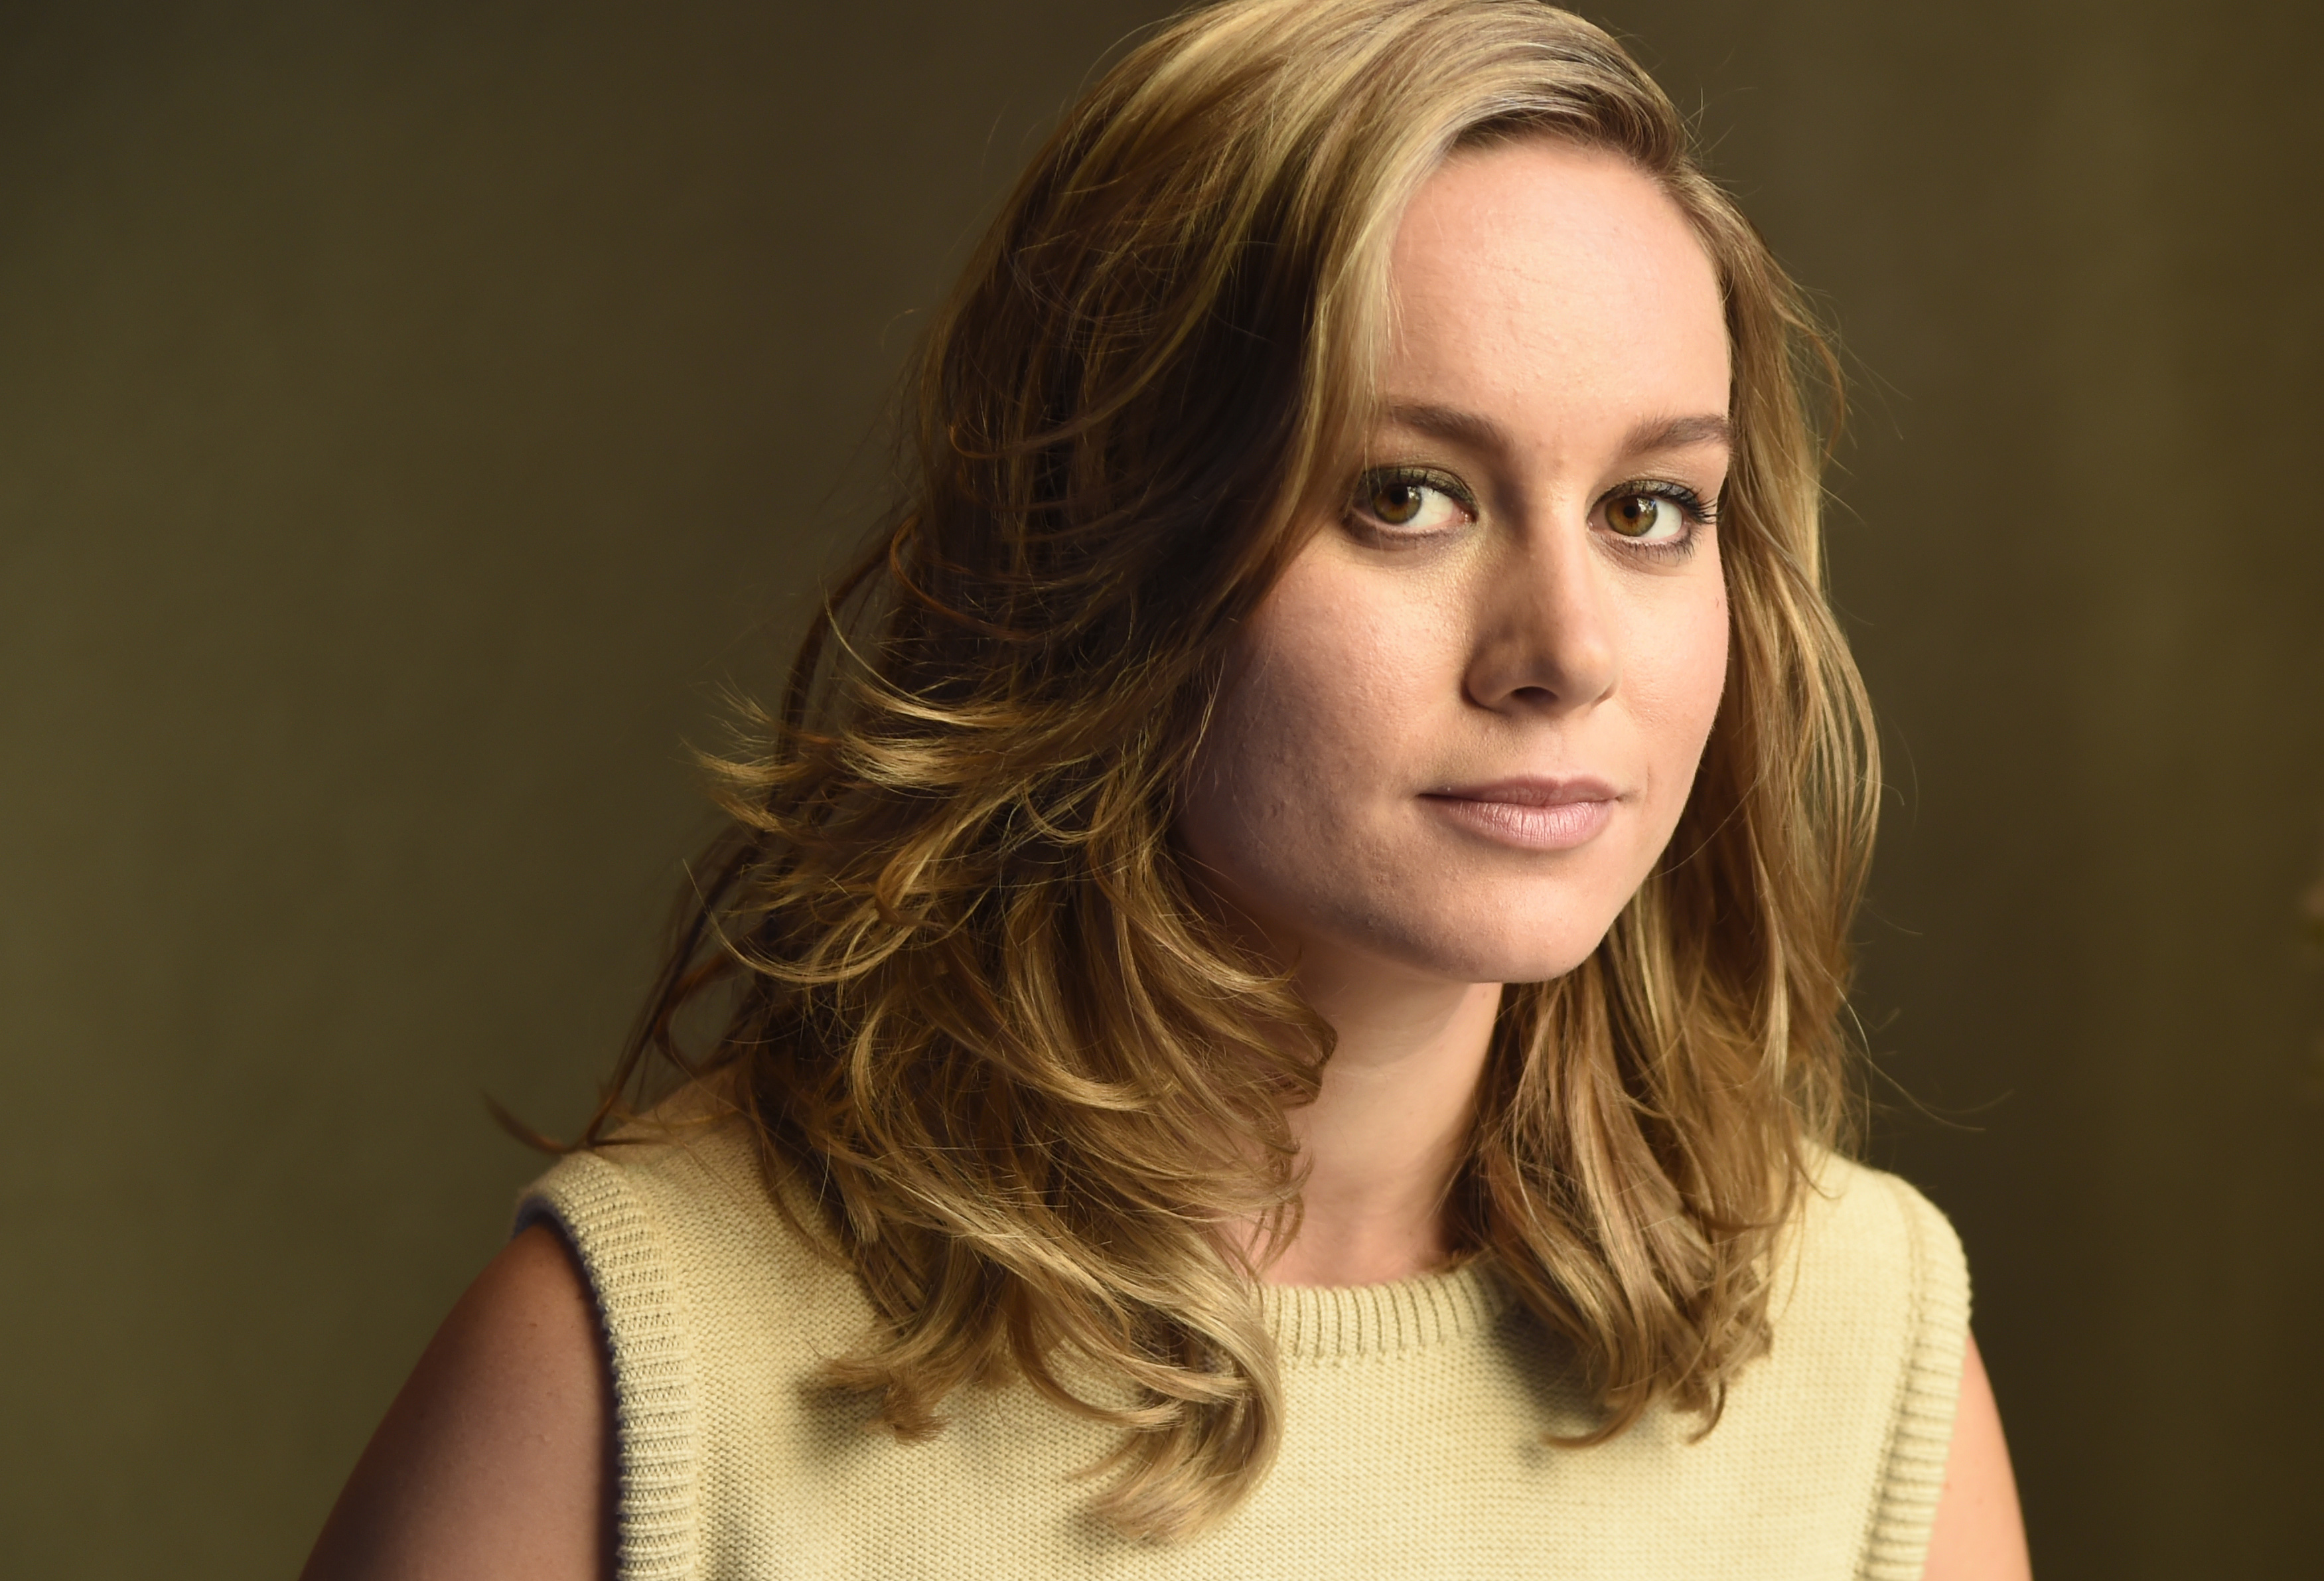 Anime Love Wallpaper Hd Brie Larson Celebrity Hd Wallpaper 55324 3502x2382 Px